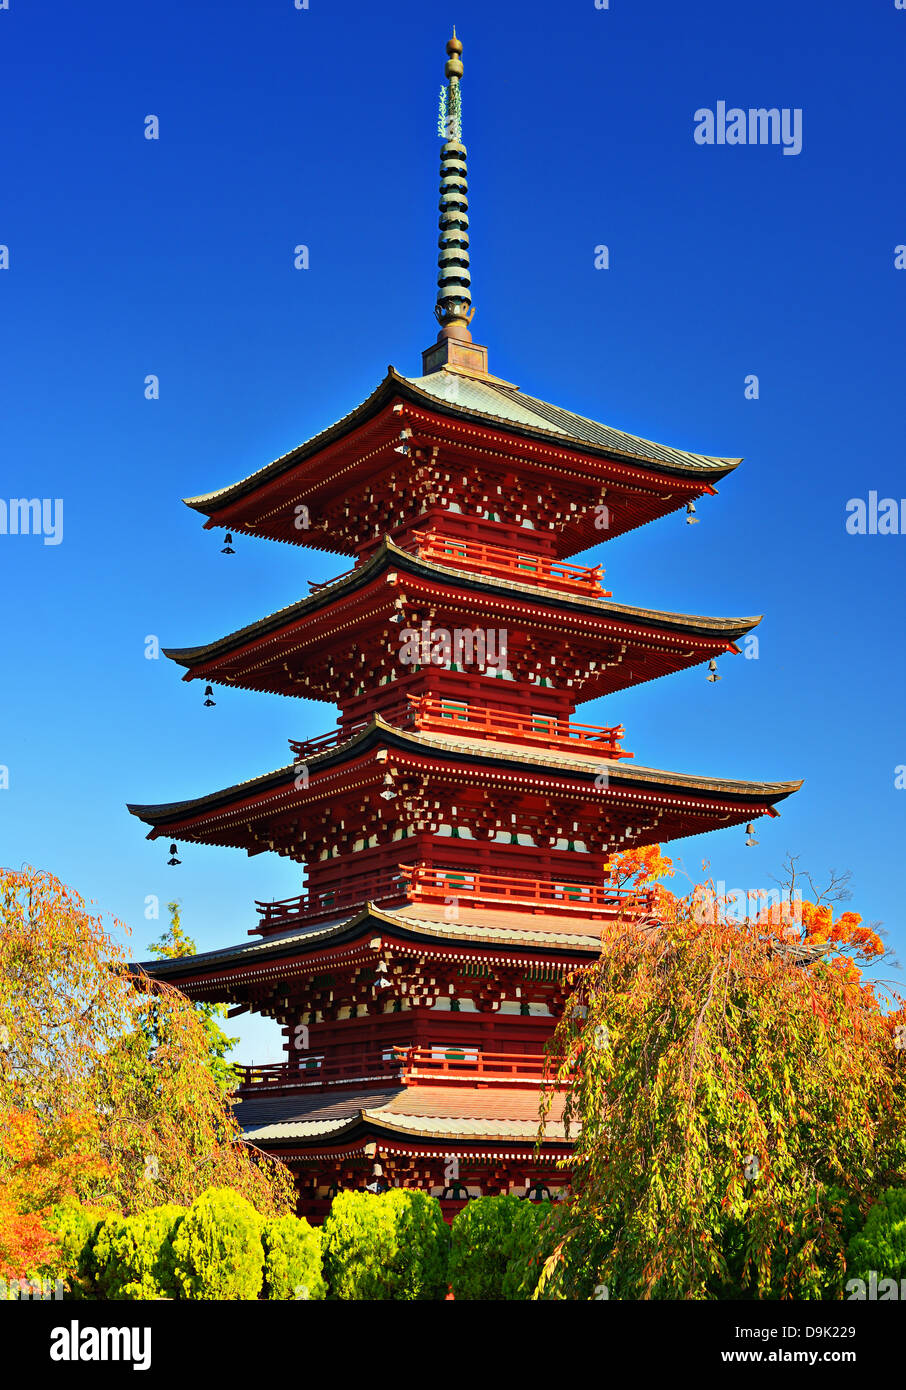 The five-story pagoda of Saishoin Temple in Hirosaki, Japan was built in 1667. - Stock Image